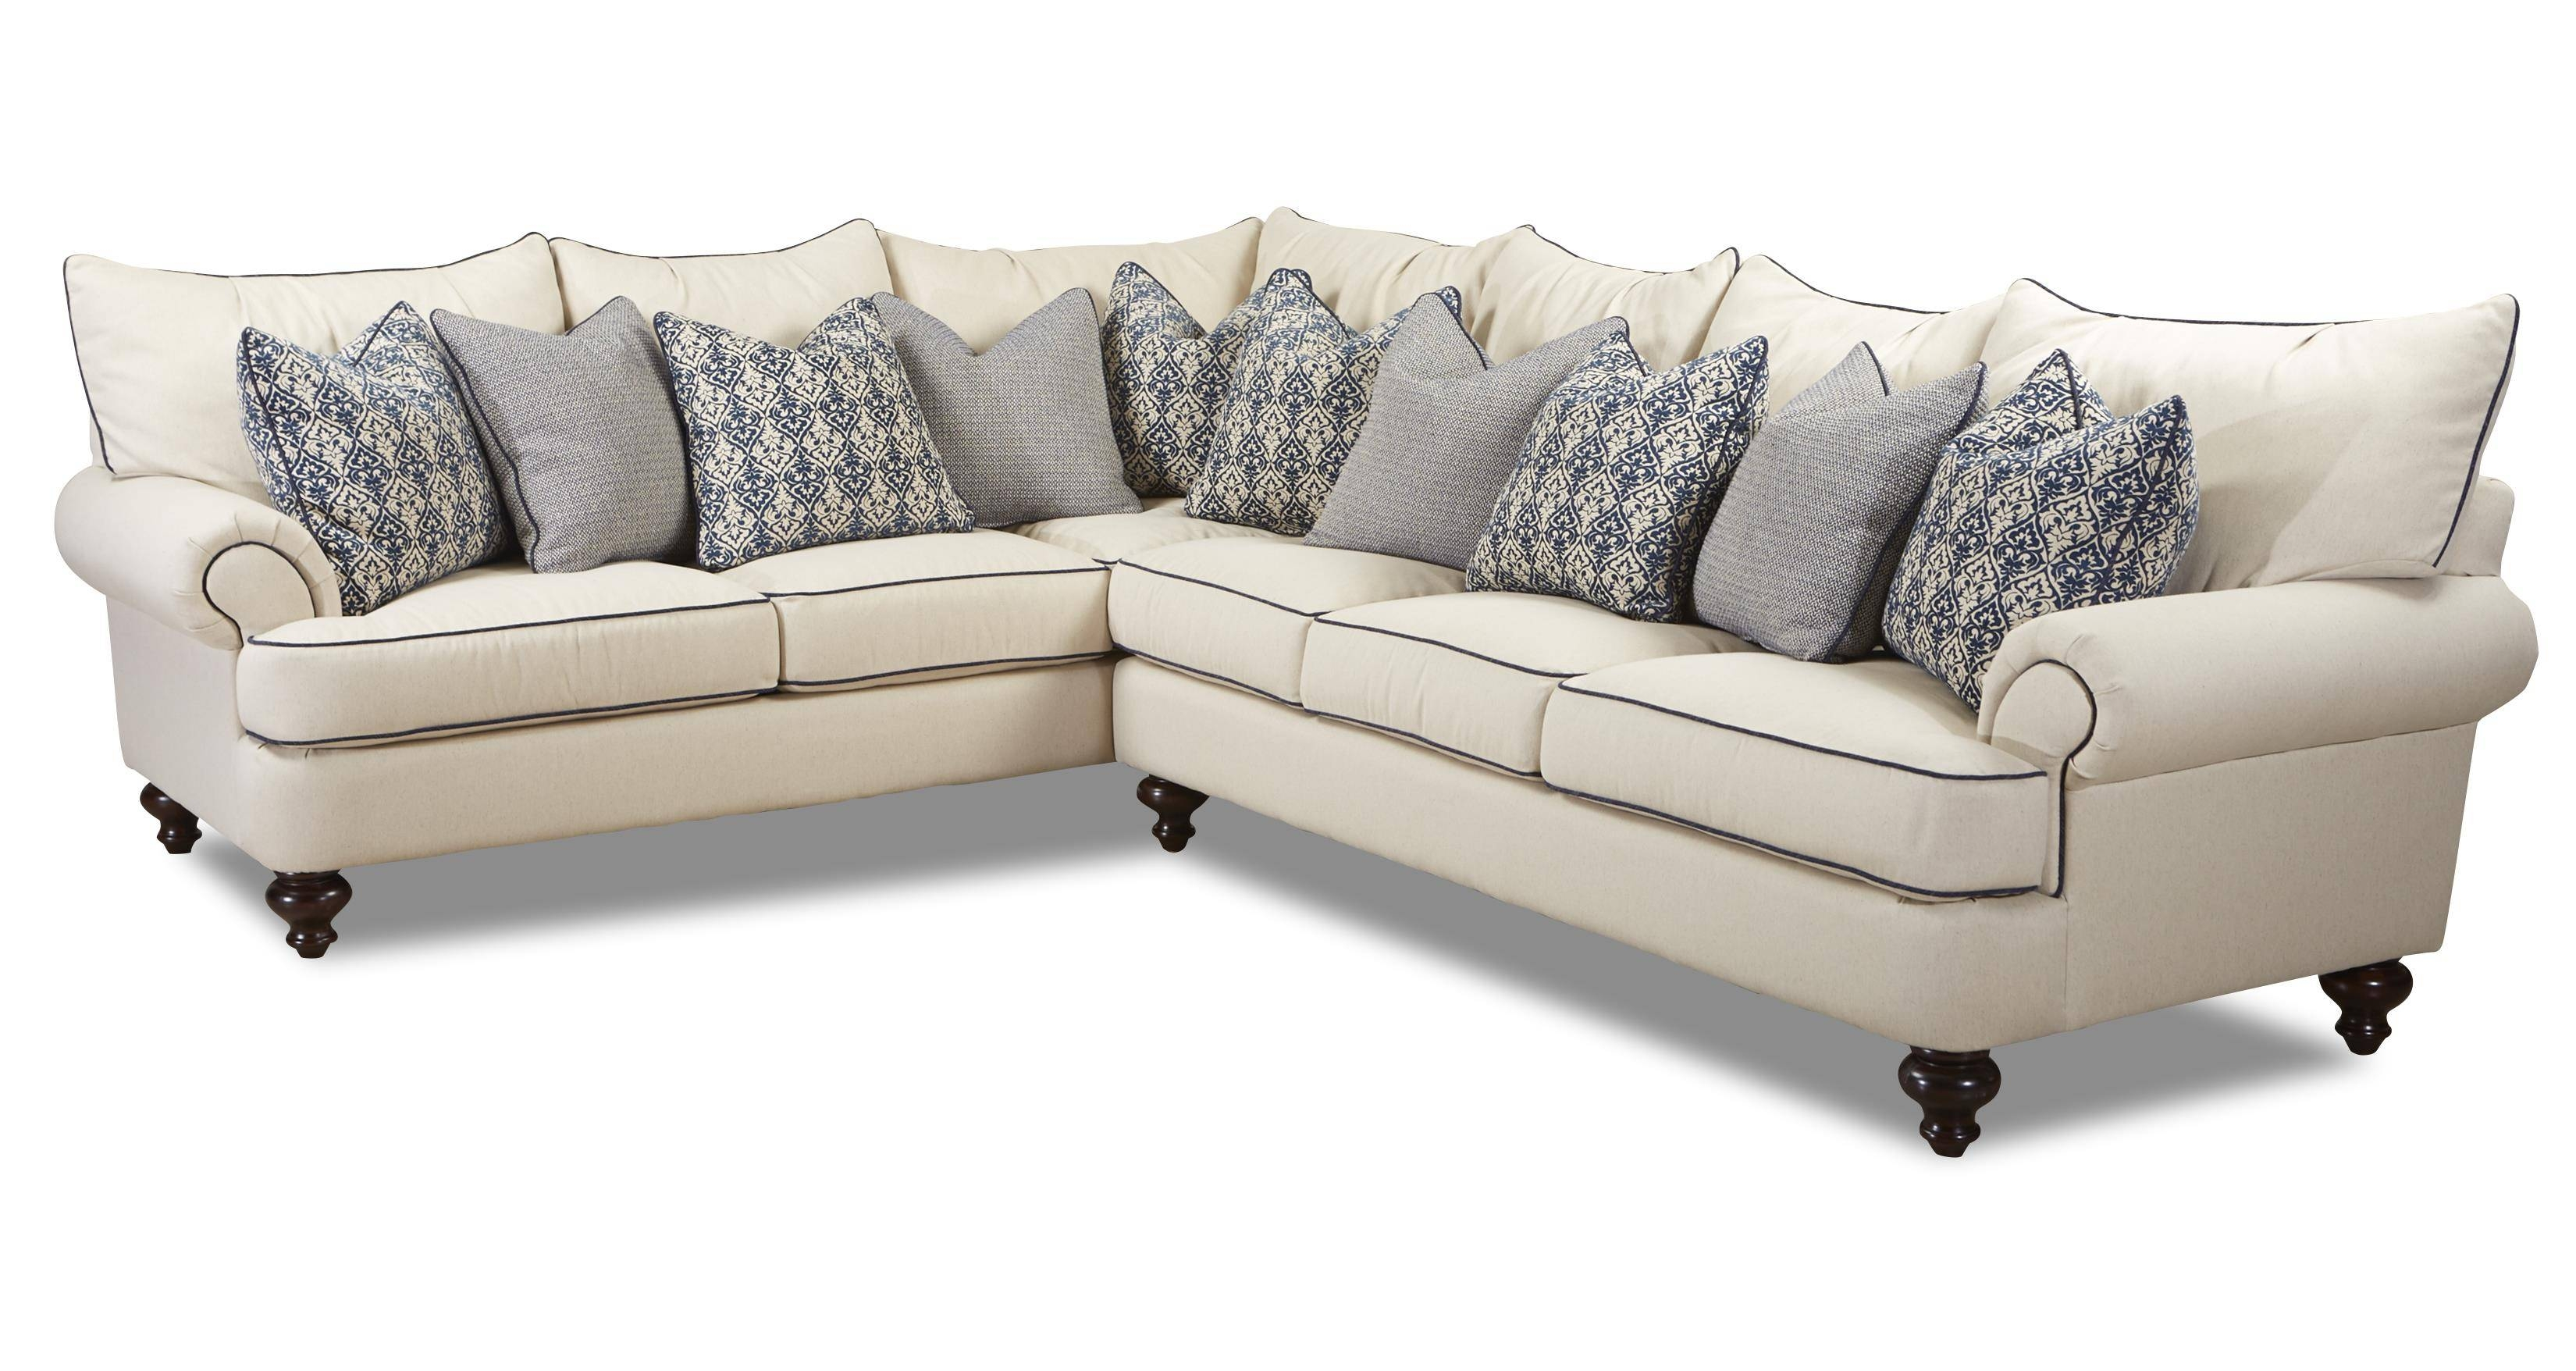 Klaussner Ashworth Shabby Chic Sectional Sofa - Wayside Furniture pertaining to Shabby Chic Sofa (Image 13 of 30)